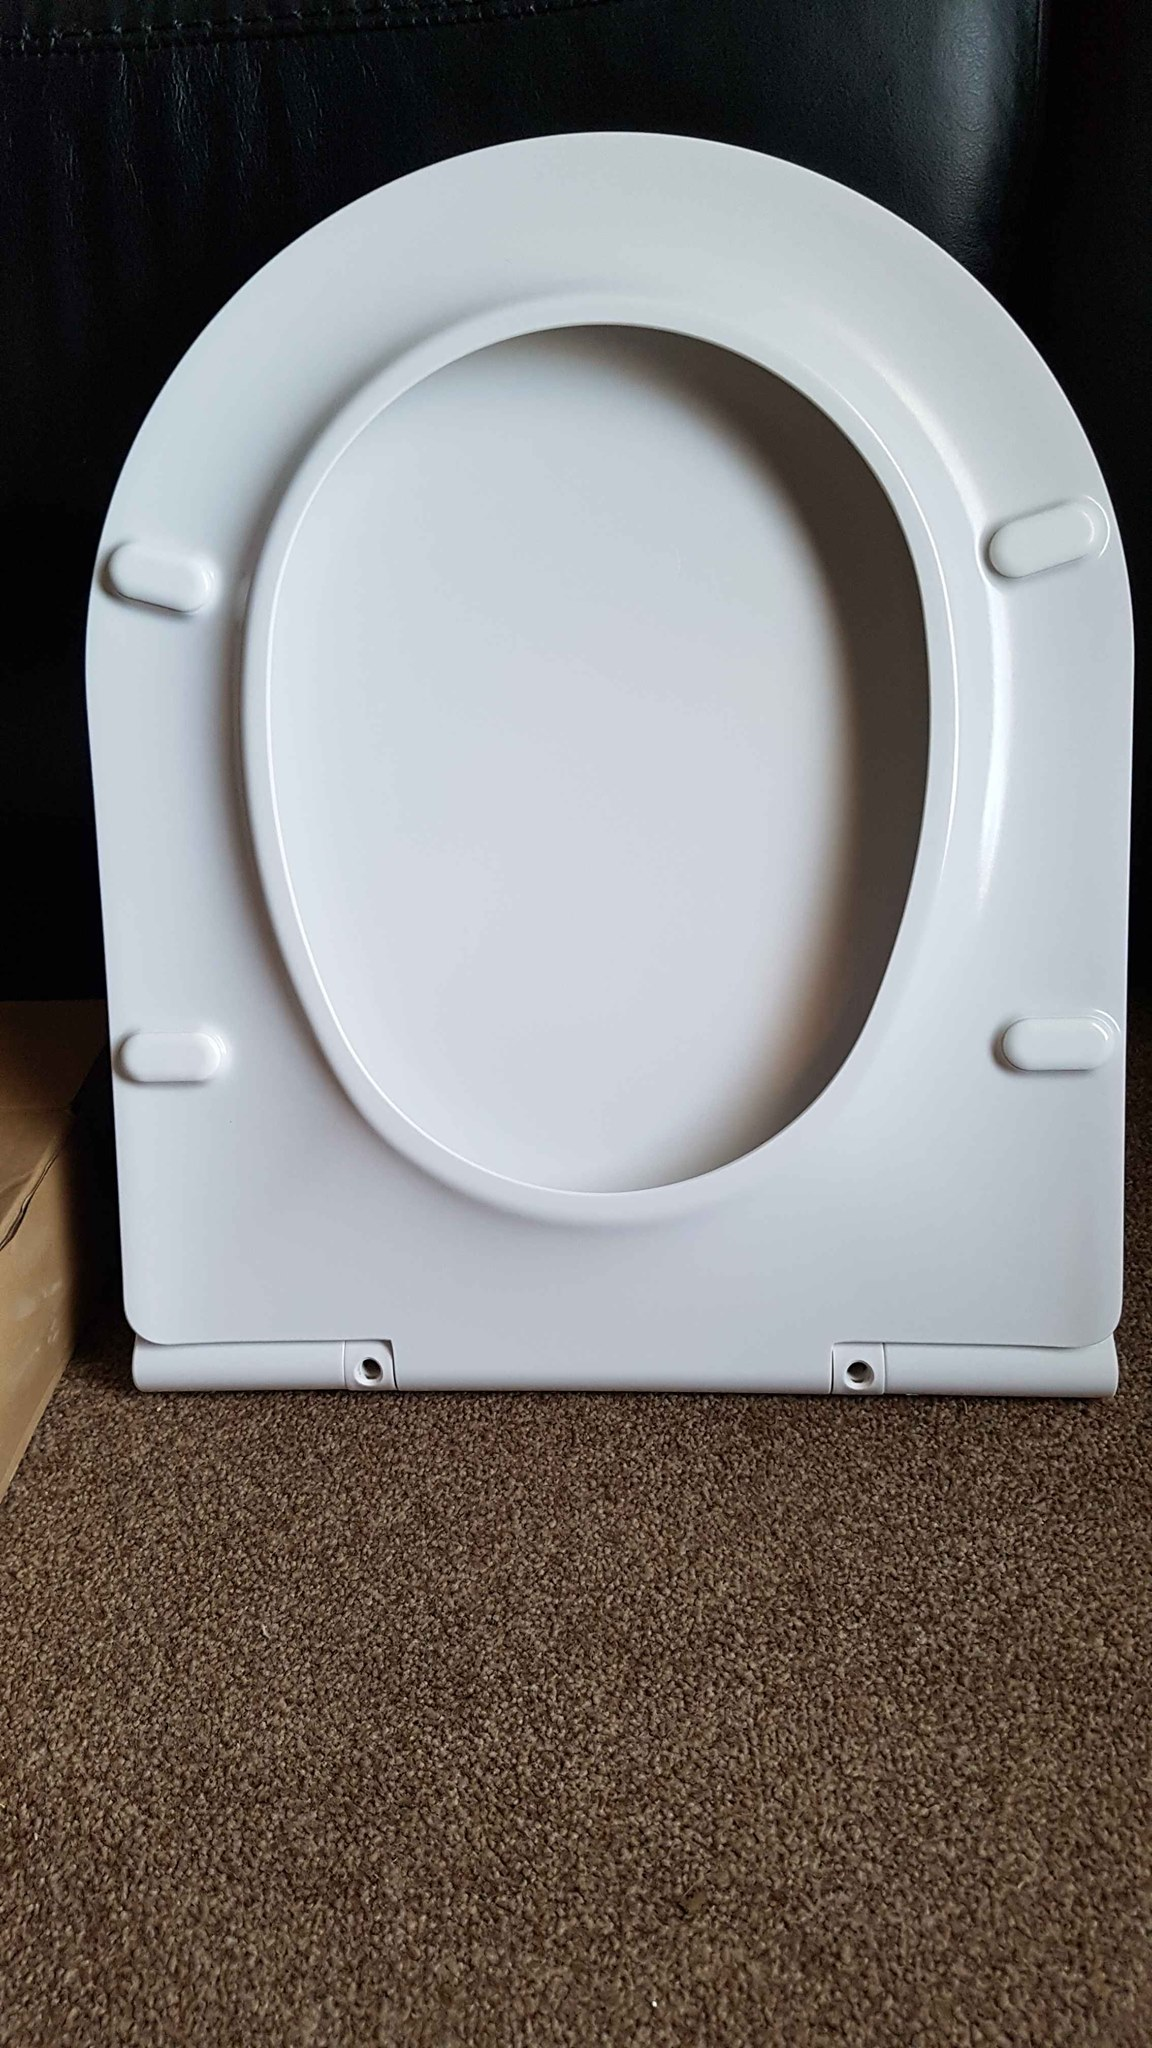 Review of FELICON D-Shape Easy Clean Toilet Seat